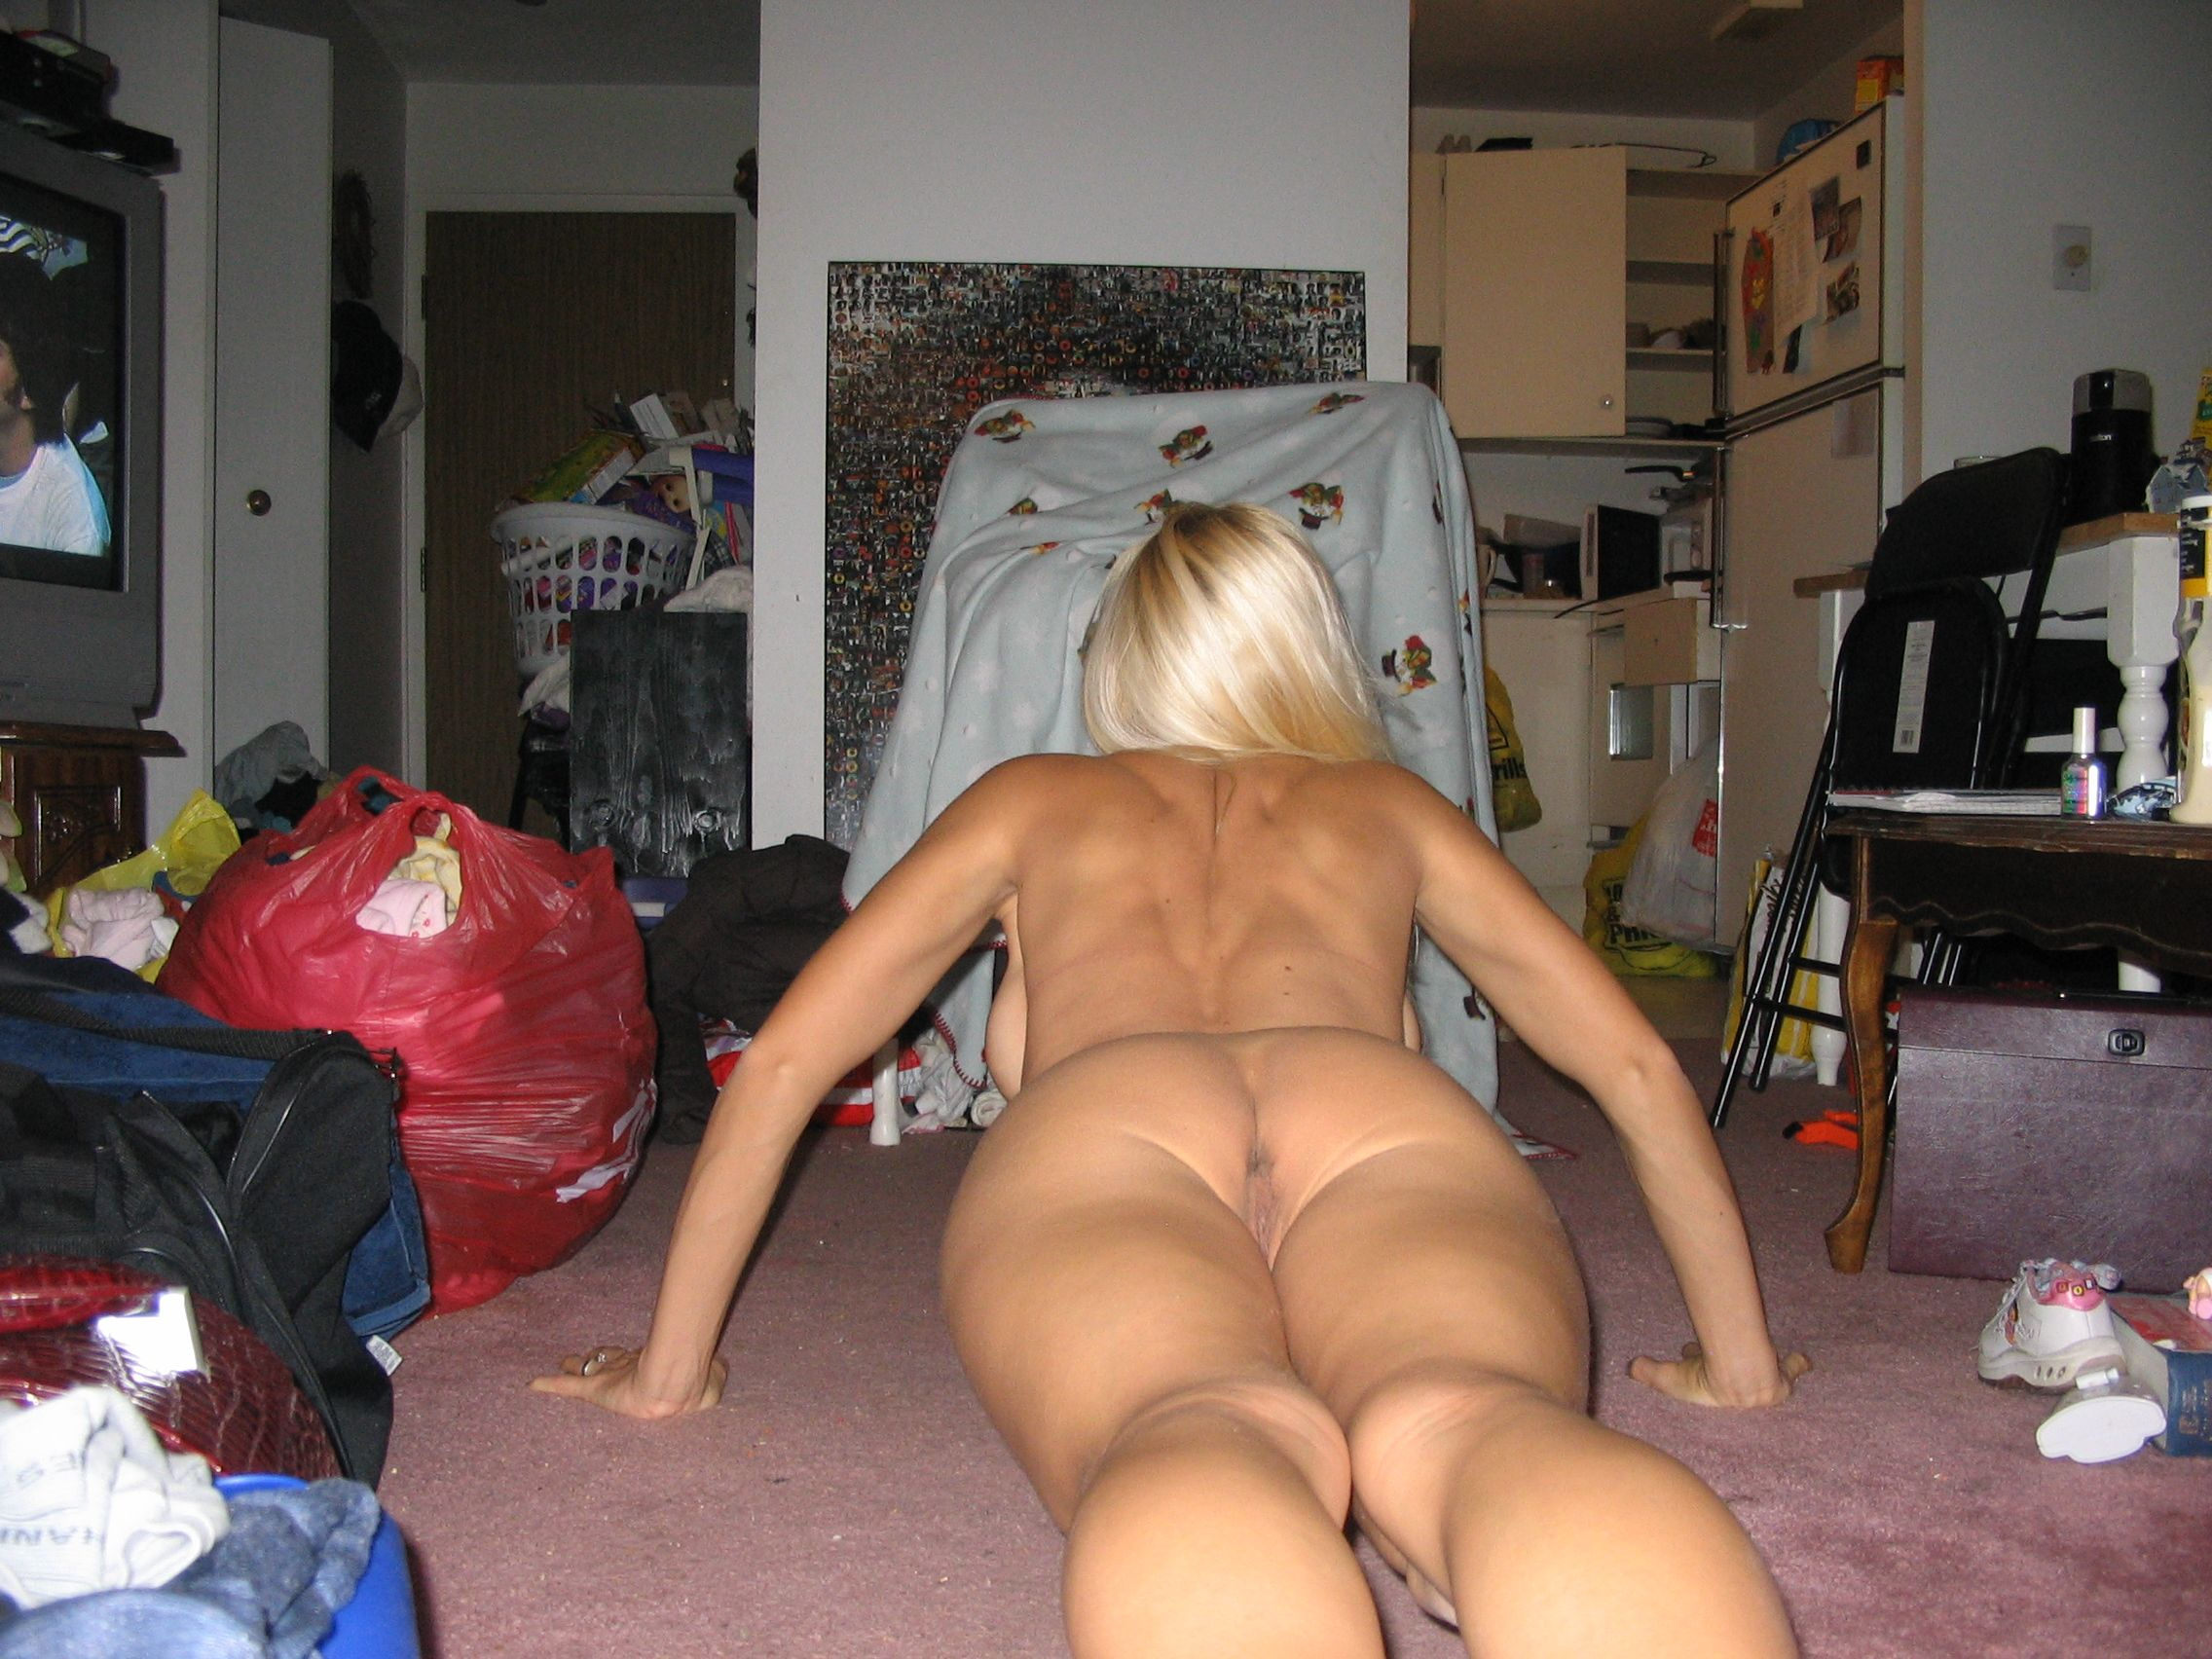 11573_amateurexpresszone.blogspot.com100_122_866lo.jpg